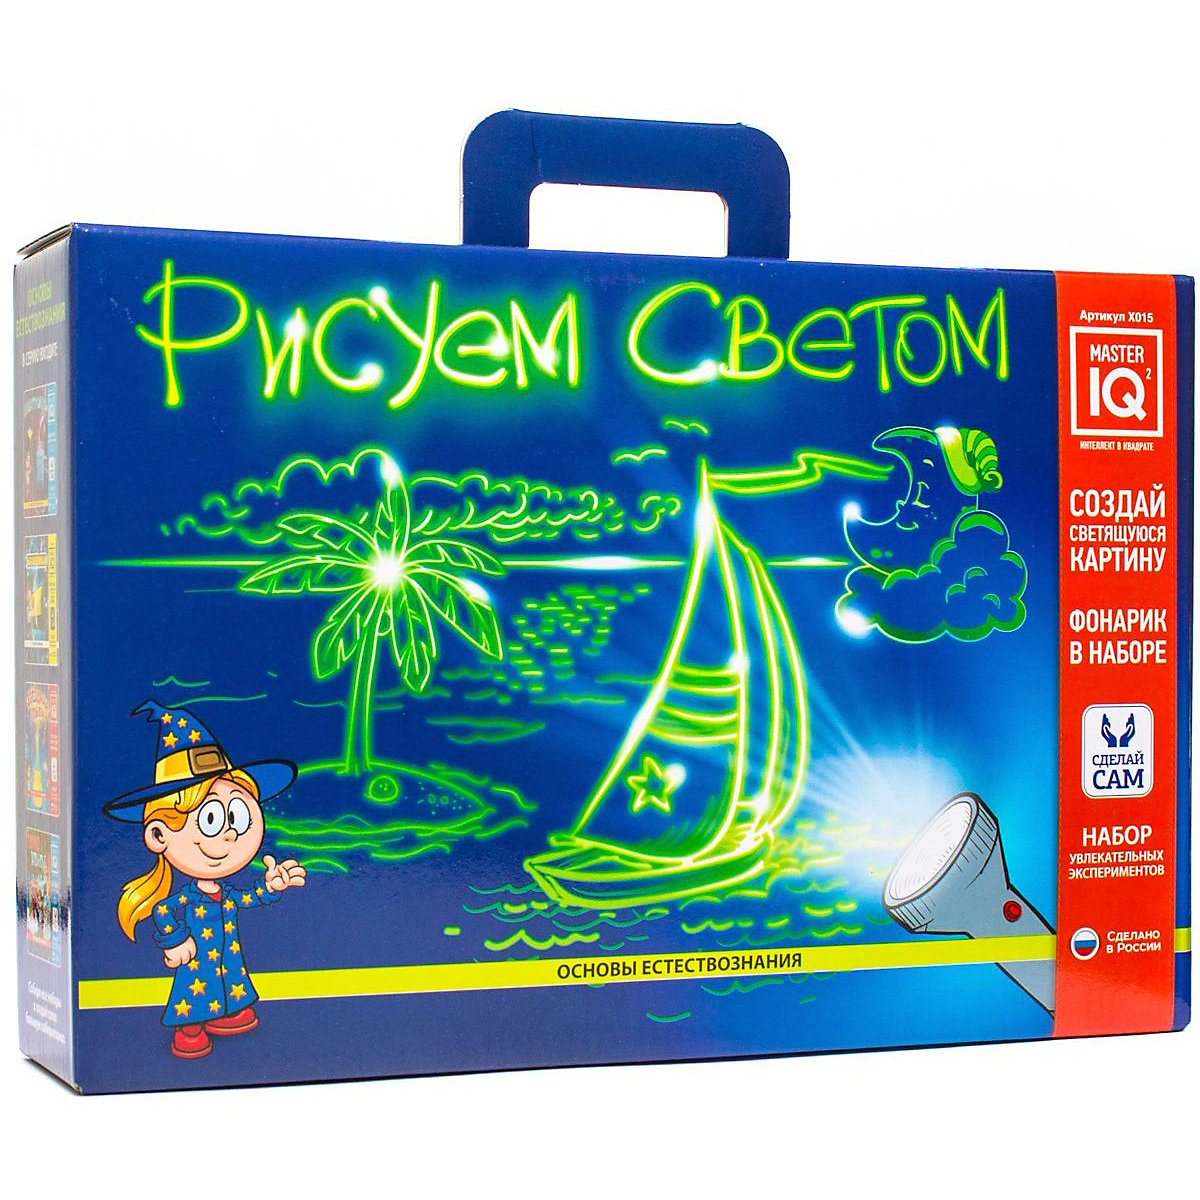 MASTER IQ2 Drawing Toys 9613878 For Creativity Education And Training Toy Children Learning MTpromo